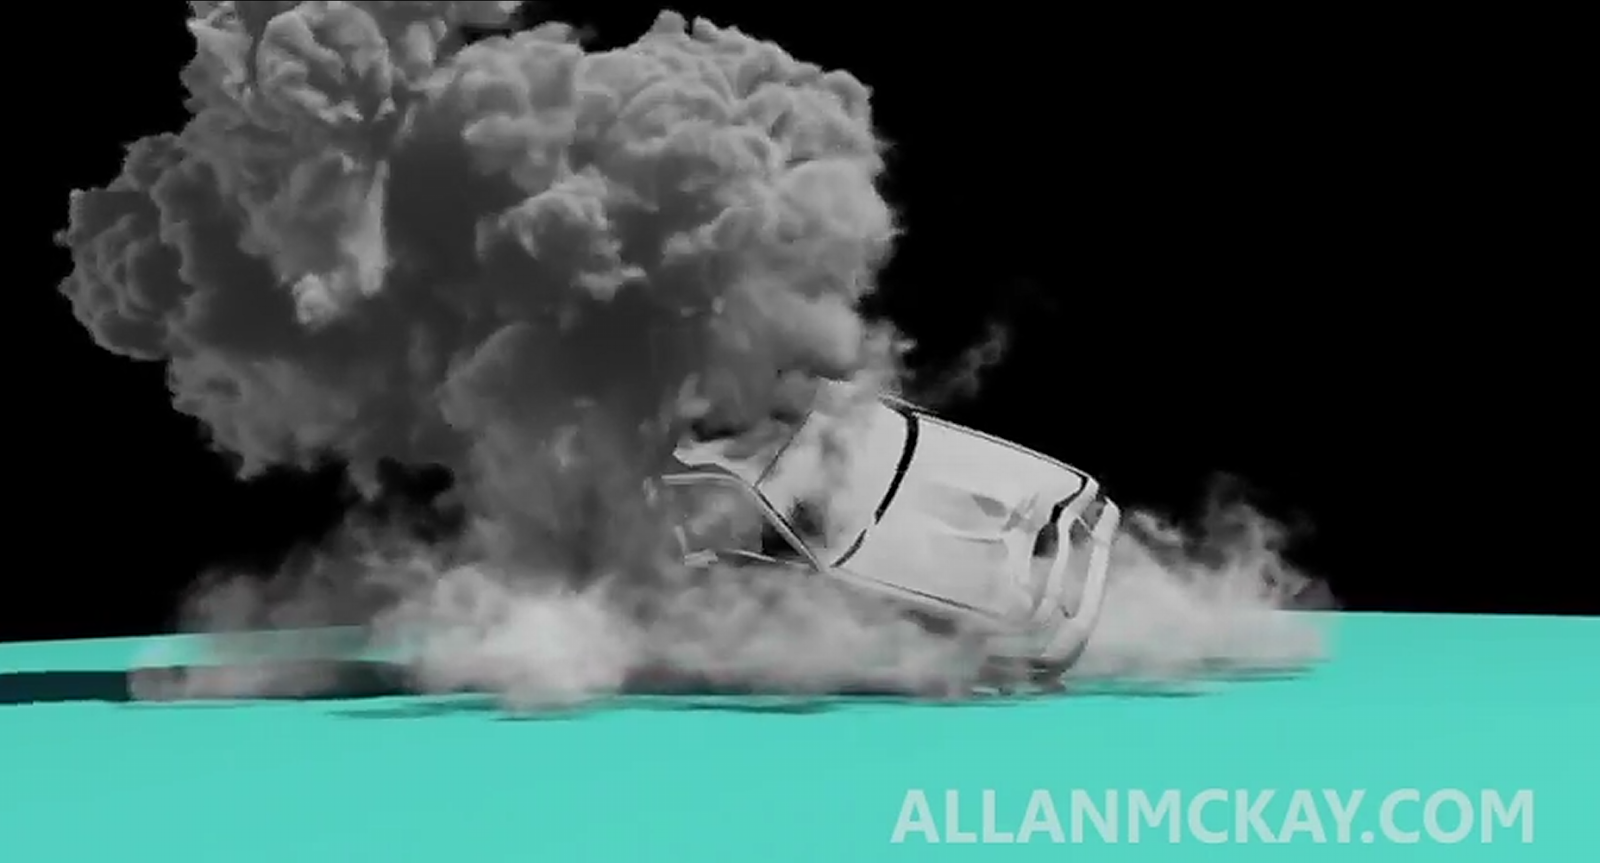 Animation Pitstop: Allan McKay, visual effects R&D